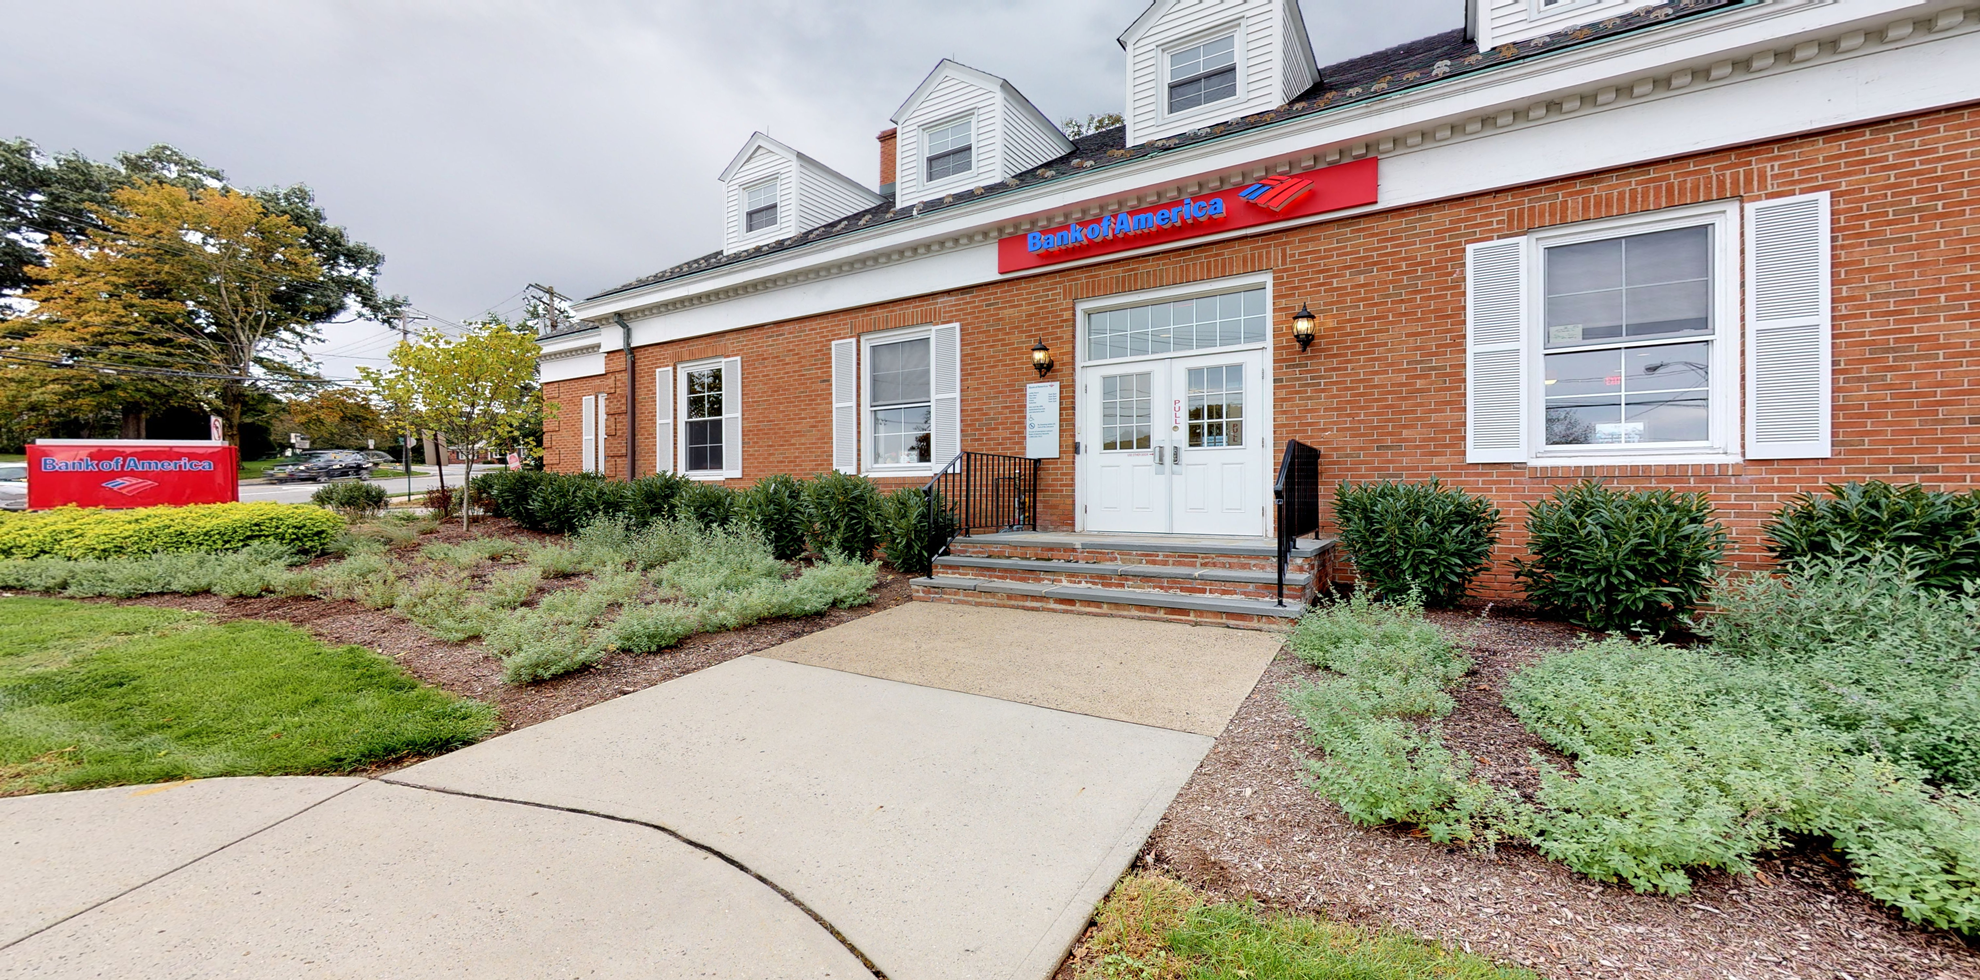 Bank of America financial center with drive-thru ATM and teller | 339 Franklin Ave, Wyckoff, NJ 07481